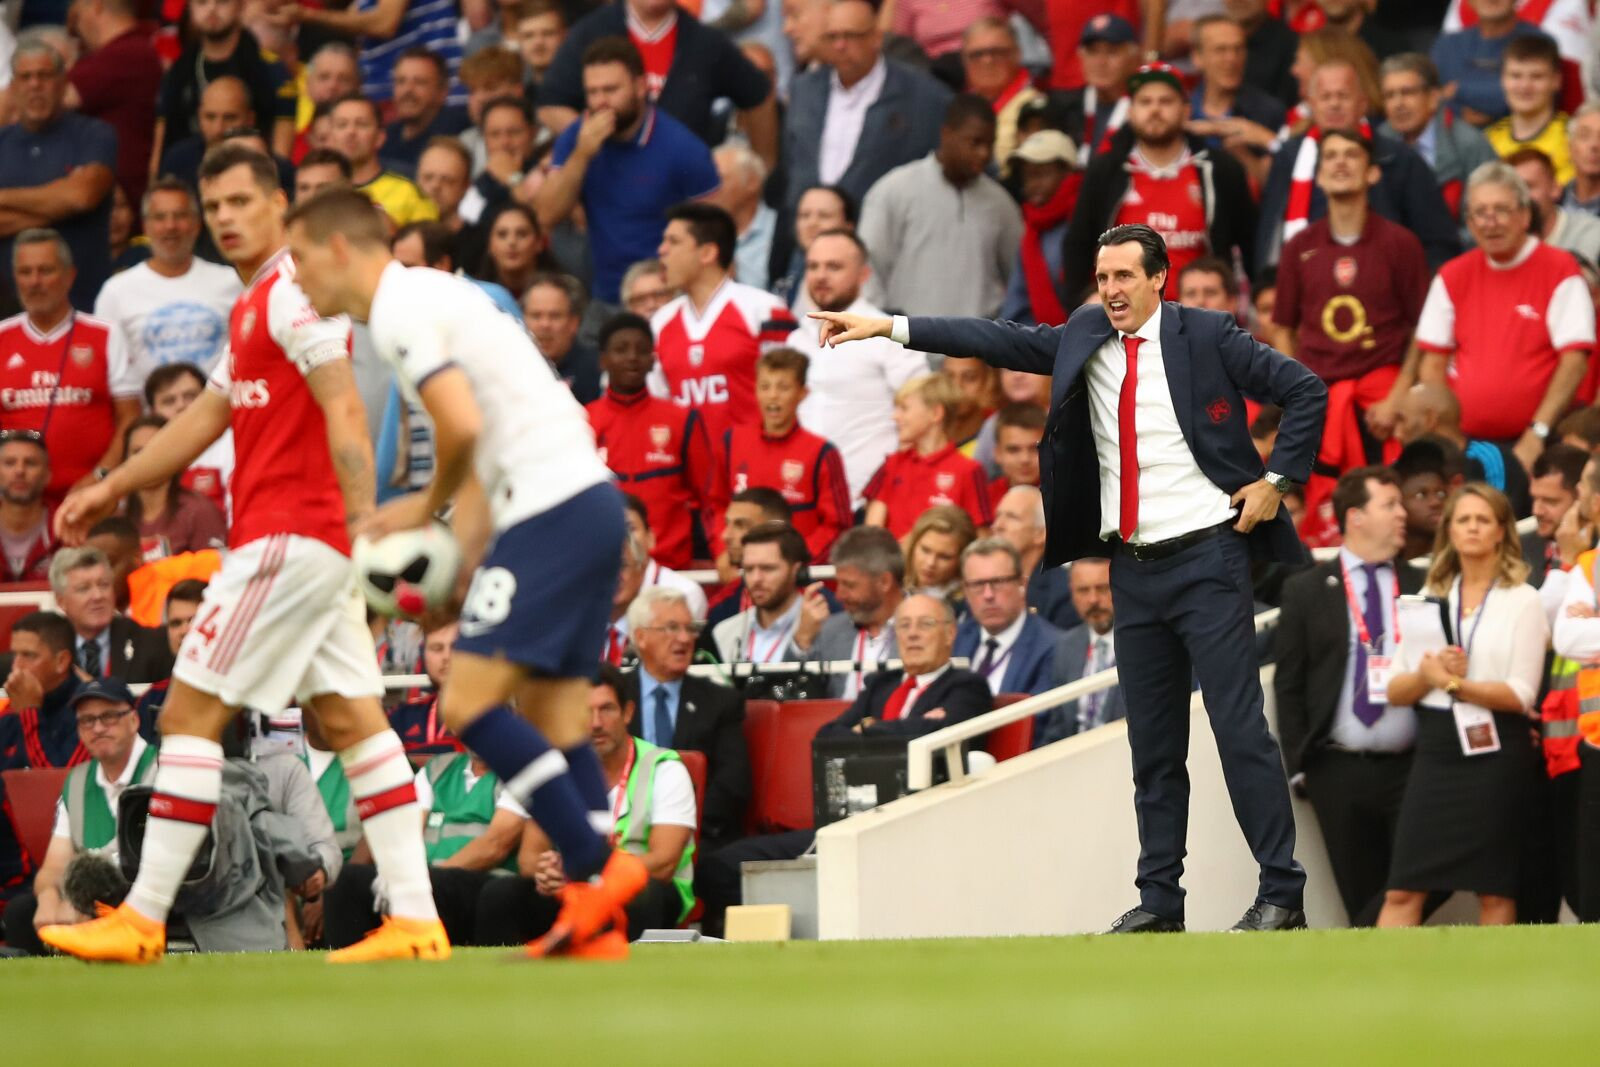 Arsenal: Here comes the gut check, at every single level